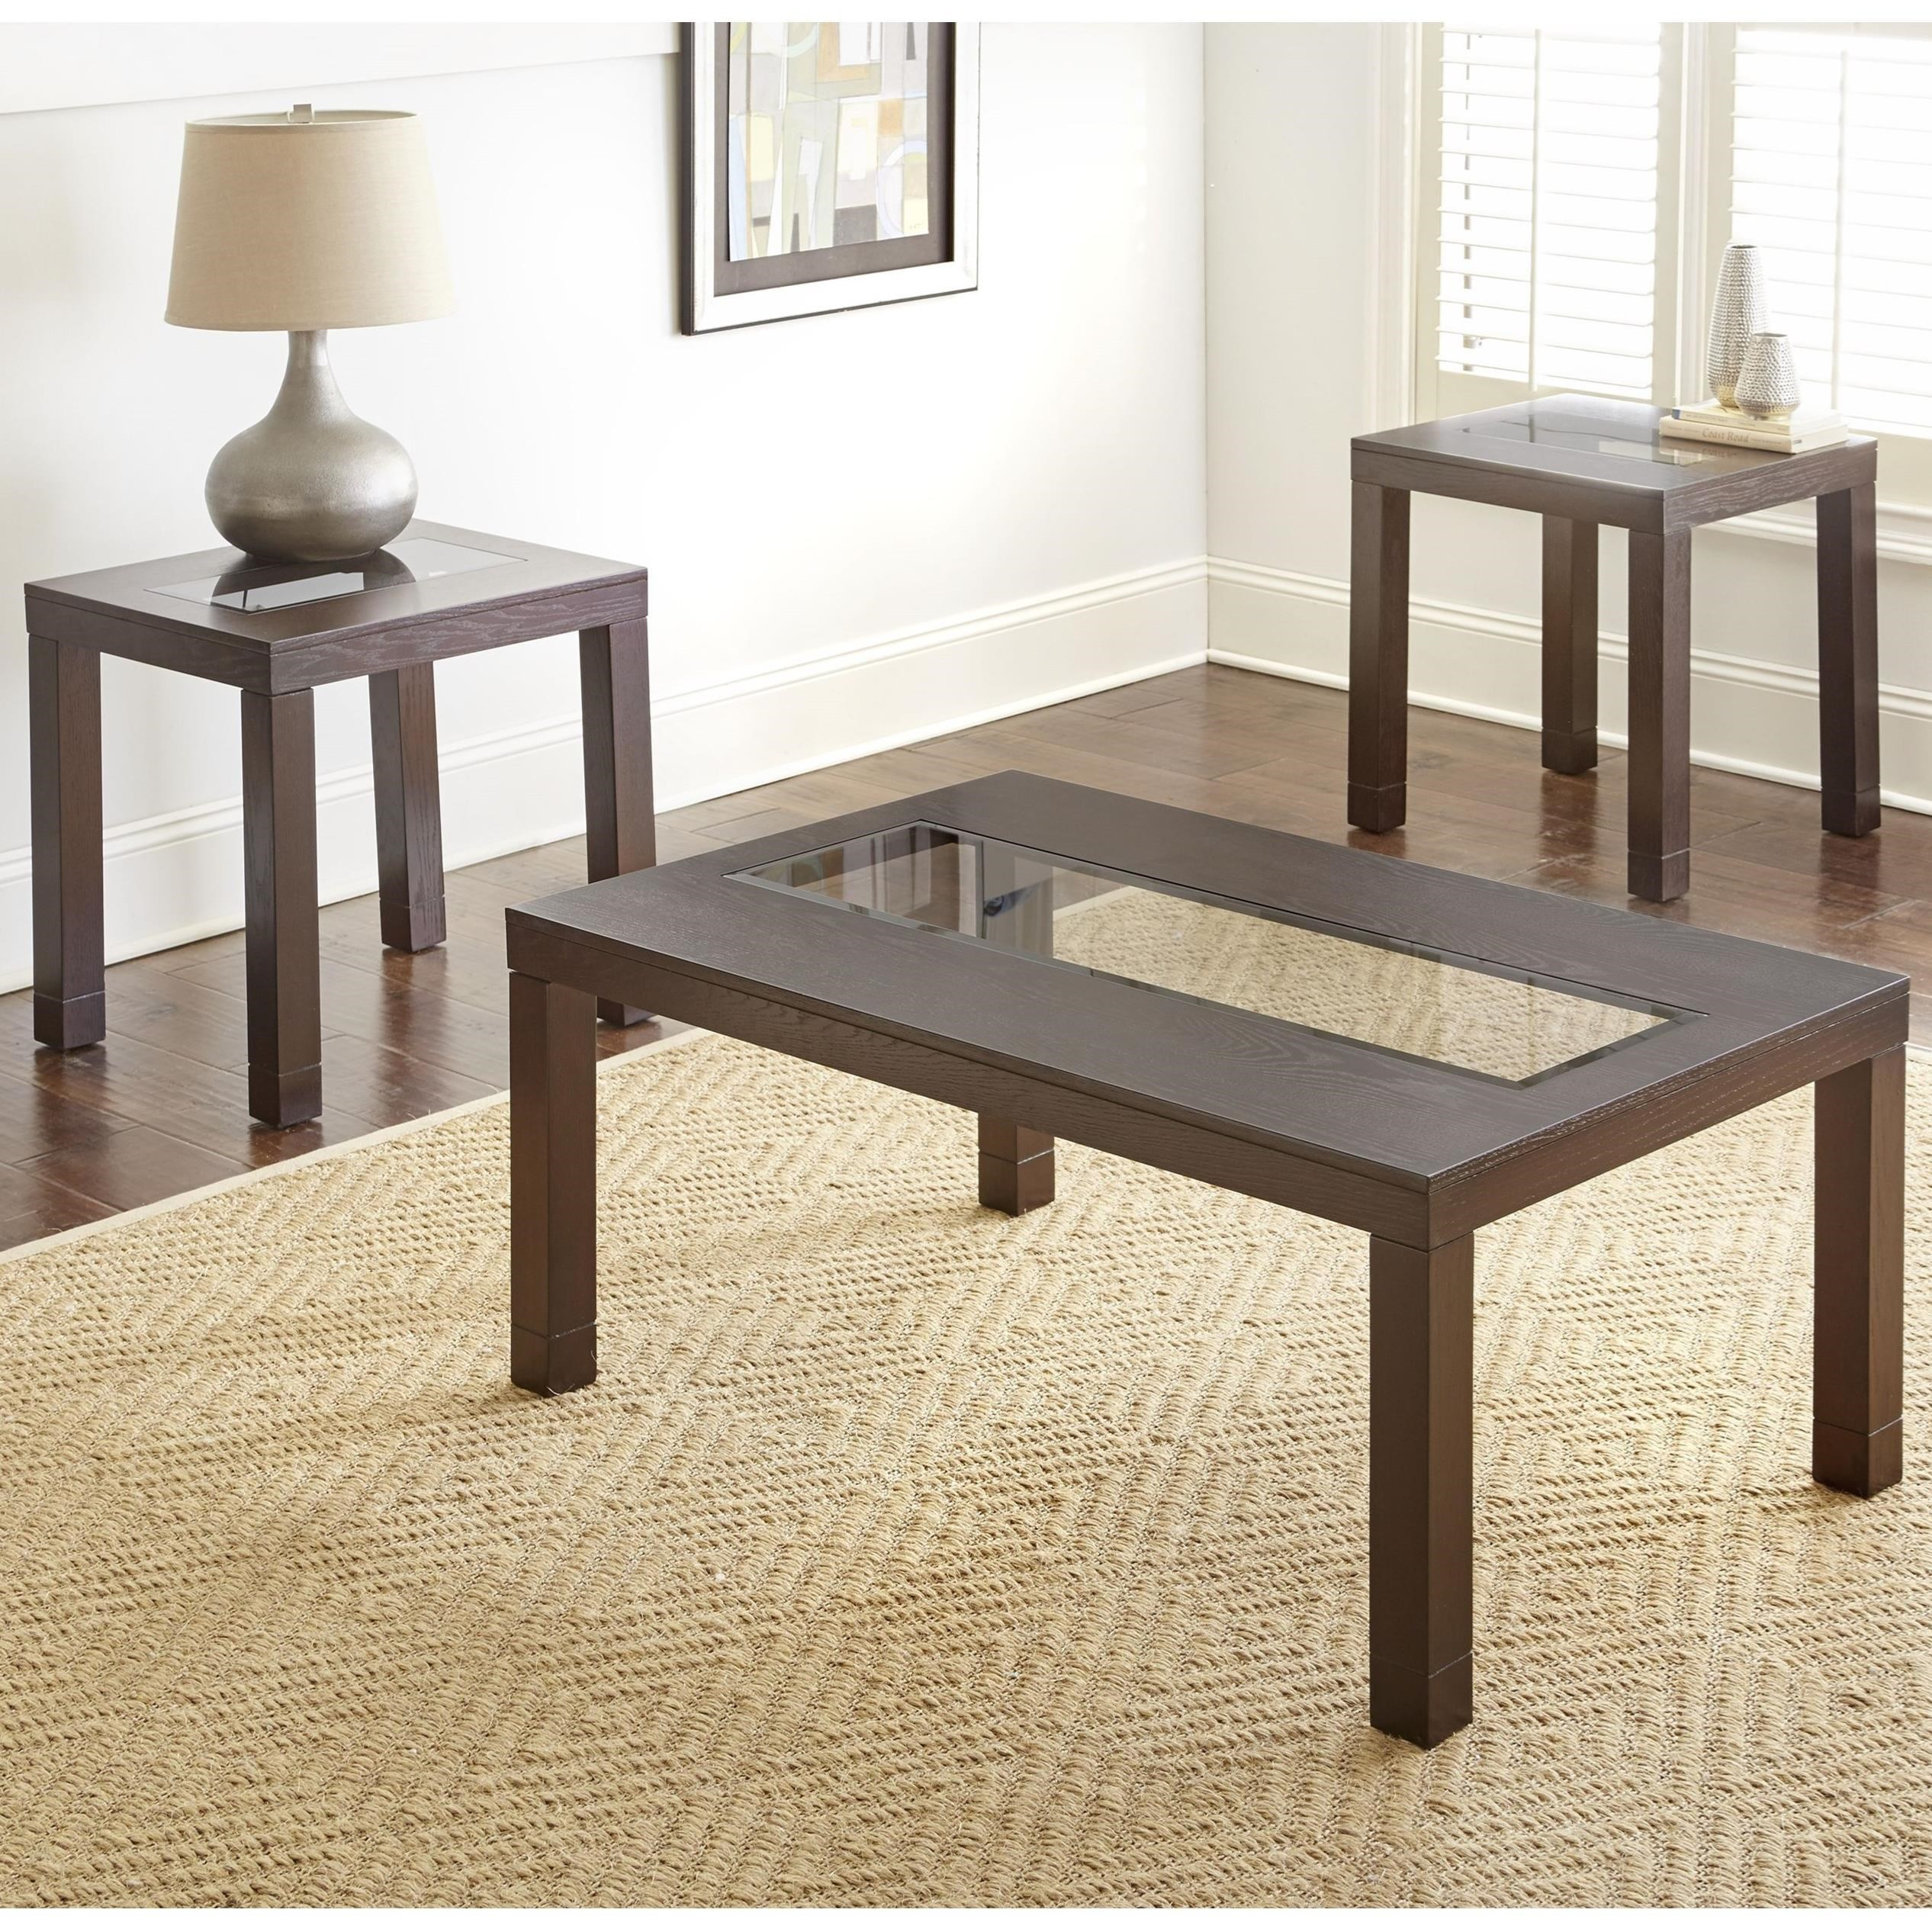 Steve silver normandy 3 piece living room table set van for 3 piece living room table sets